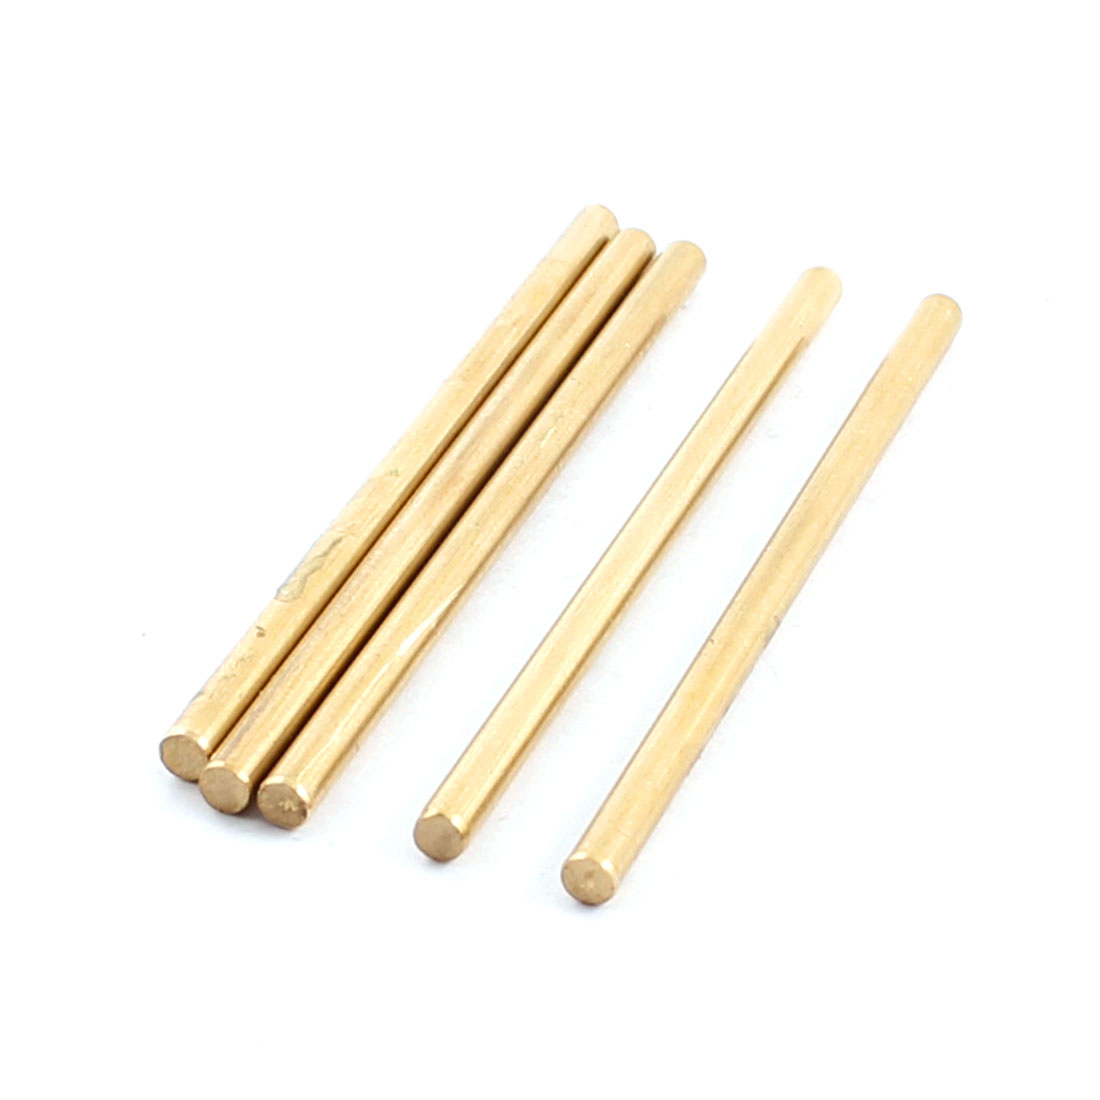 5Pcs 3mm Dia 60mm Length Brass Round Rod Shaft for RC Toy Car